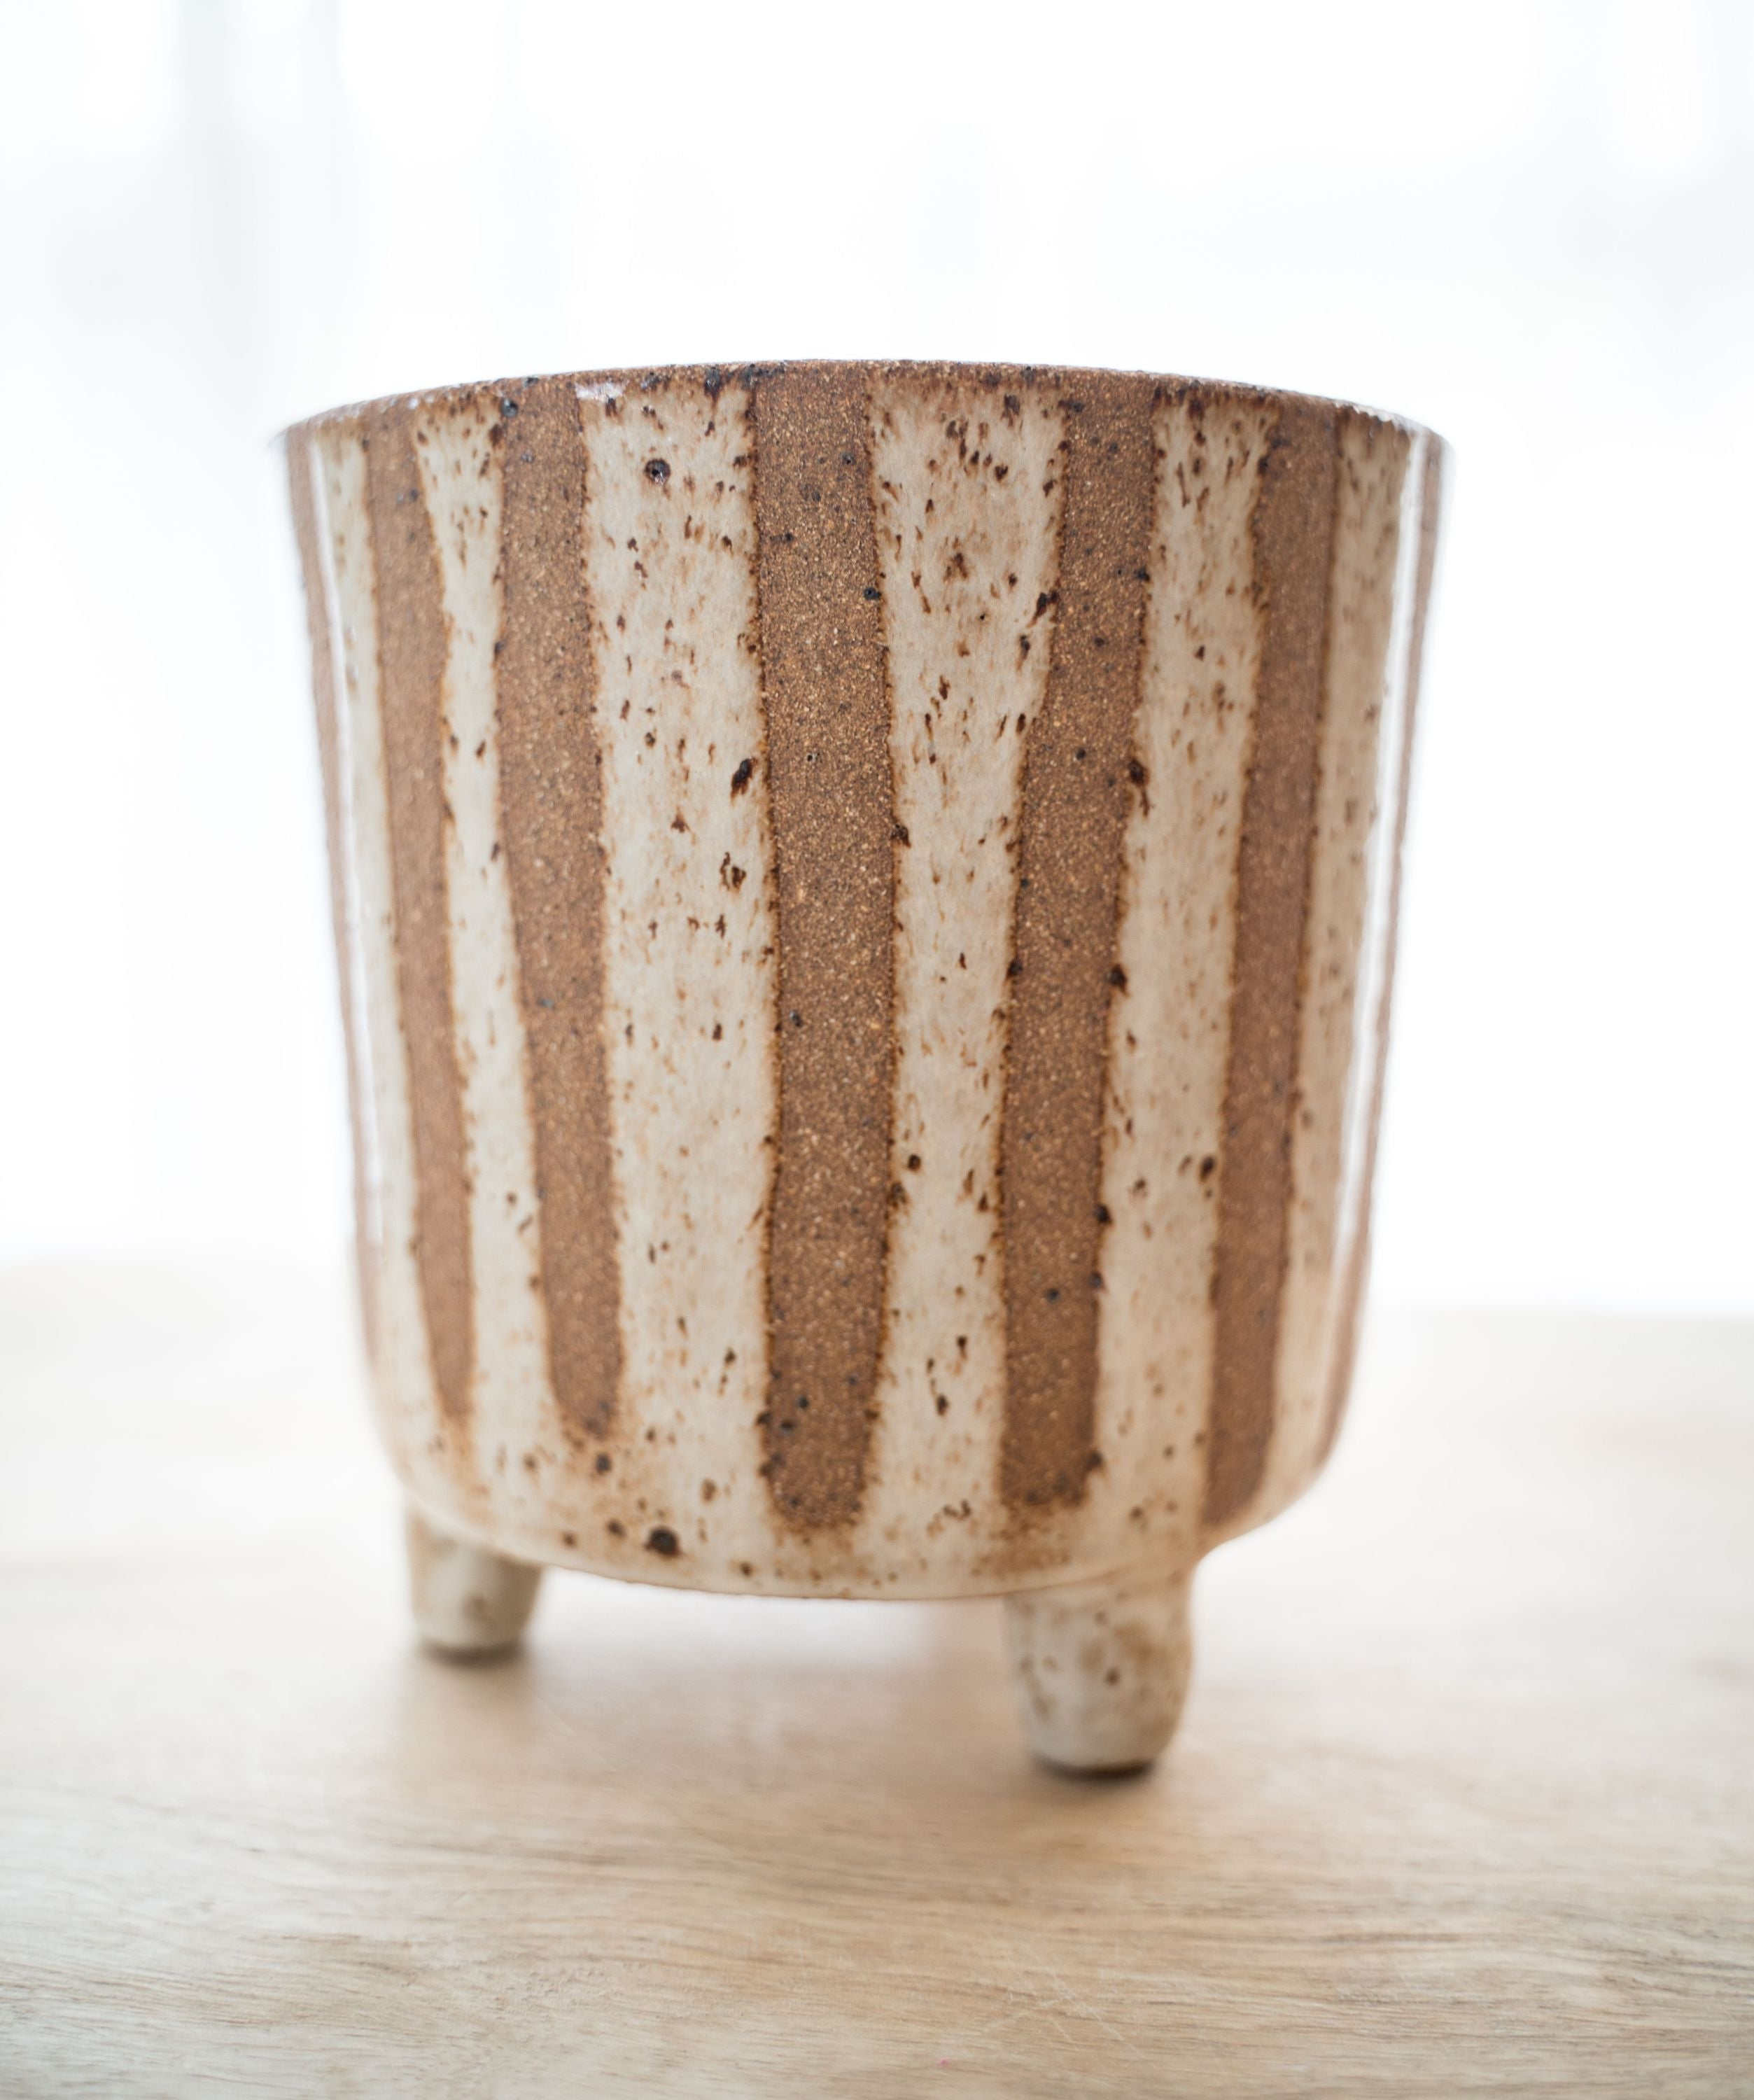 Rustic stumpaloompa planter